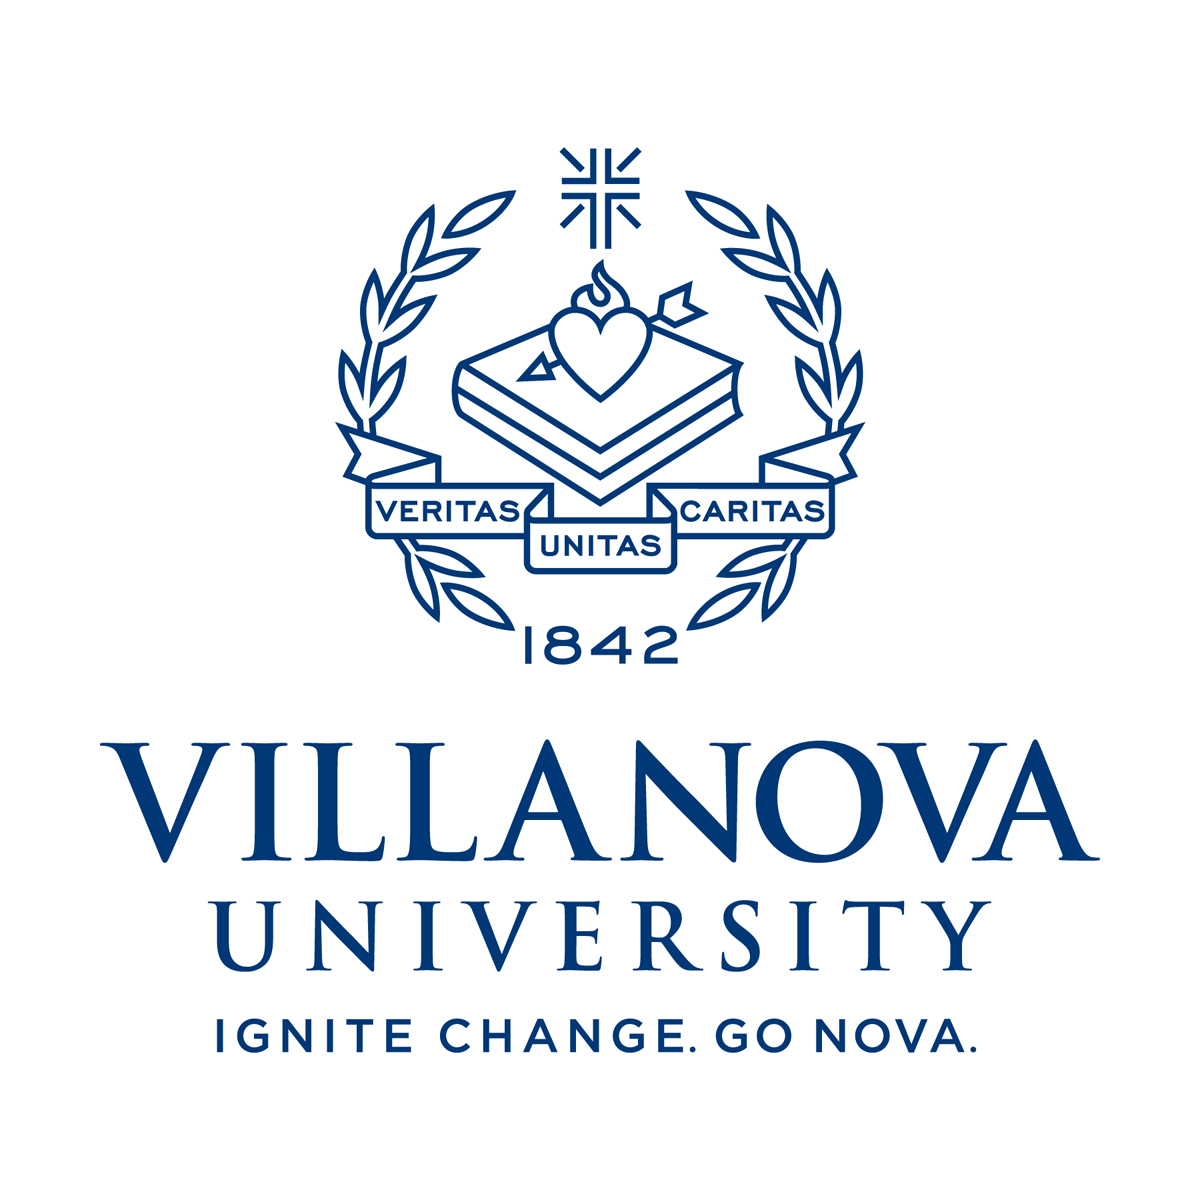 villanova dating site Villanova's best free dating site 100% free online dating for villanova singles at mingle2com our free personal ads are full of single women and men in villanova looking for serious relationships, a little online flirtation, or new friends to go out with.